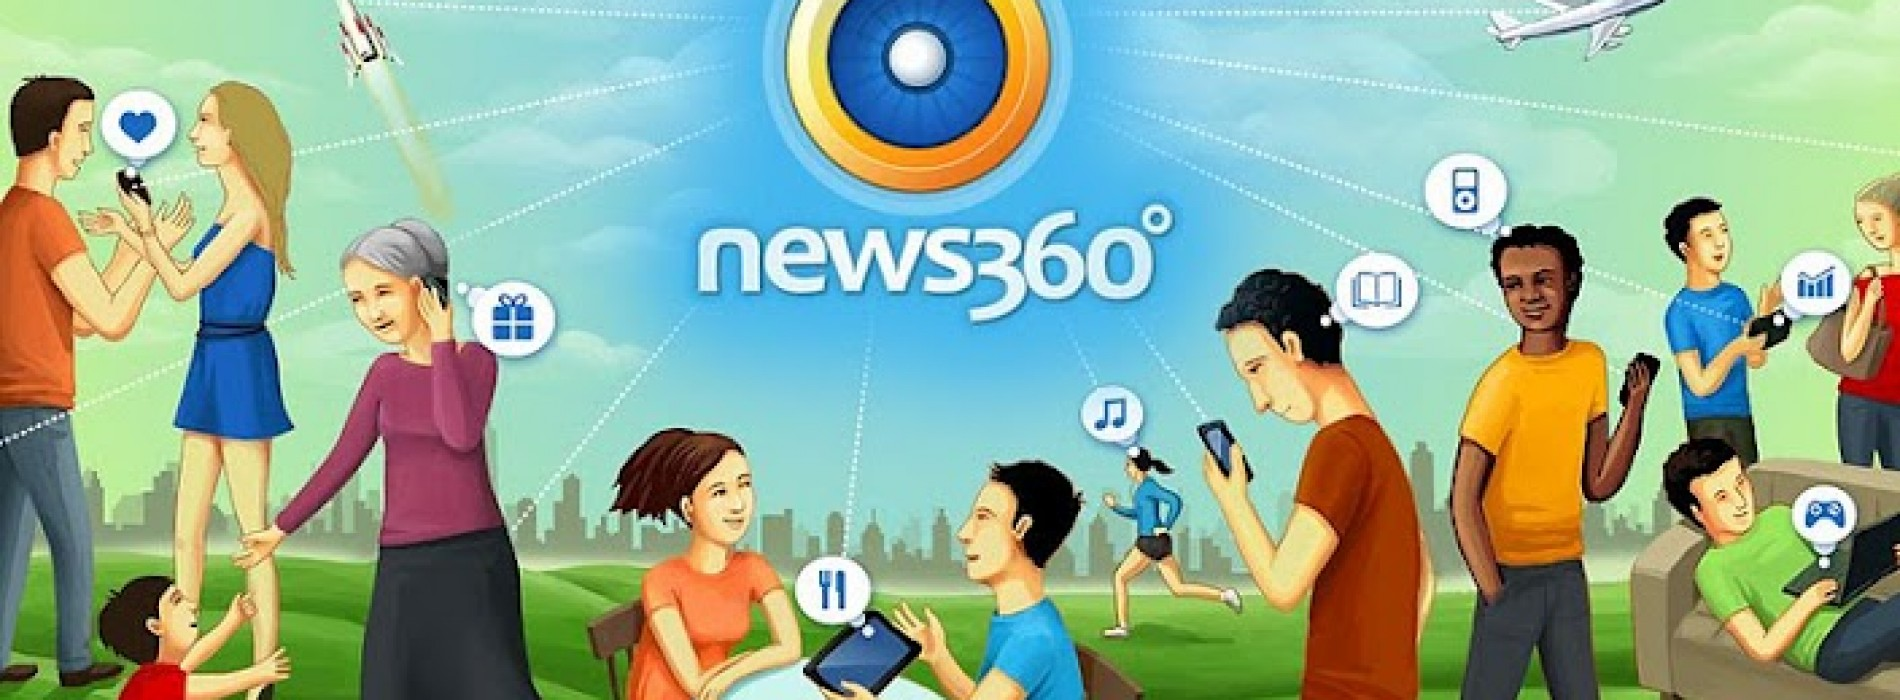 News360 debuts new design and personalization options for tablets